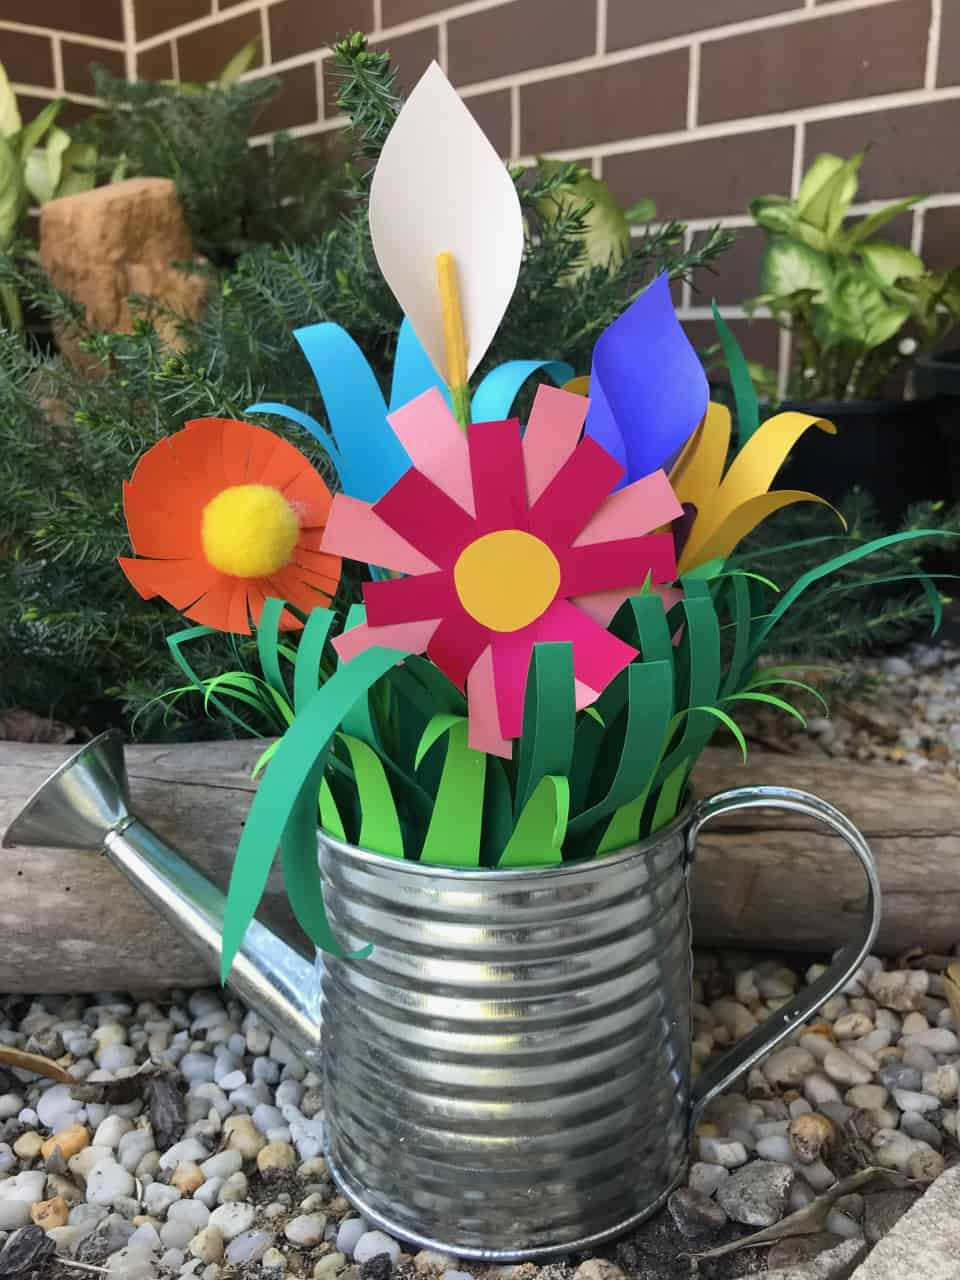 Les Petits Painters school holidays art camp for kids, paper sculpture for children 5-9 years old, paper cut, folded, formed to create a bouquet in a watering can